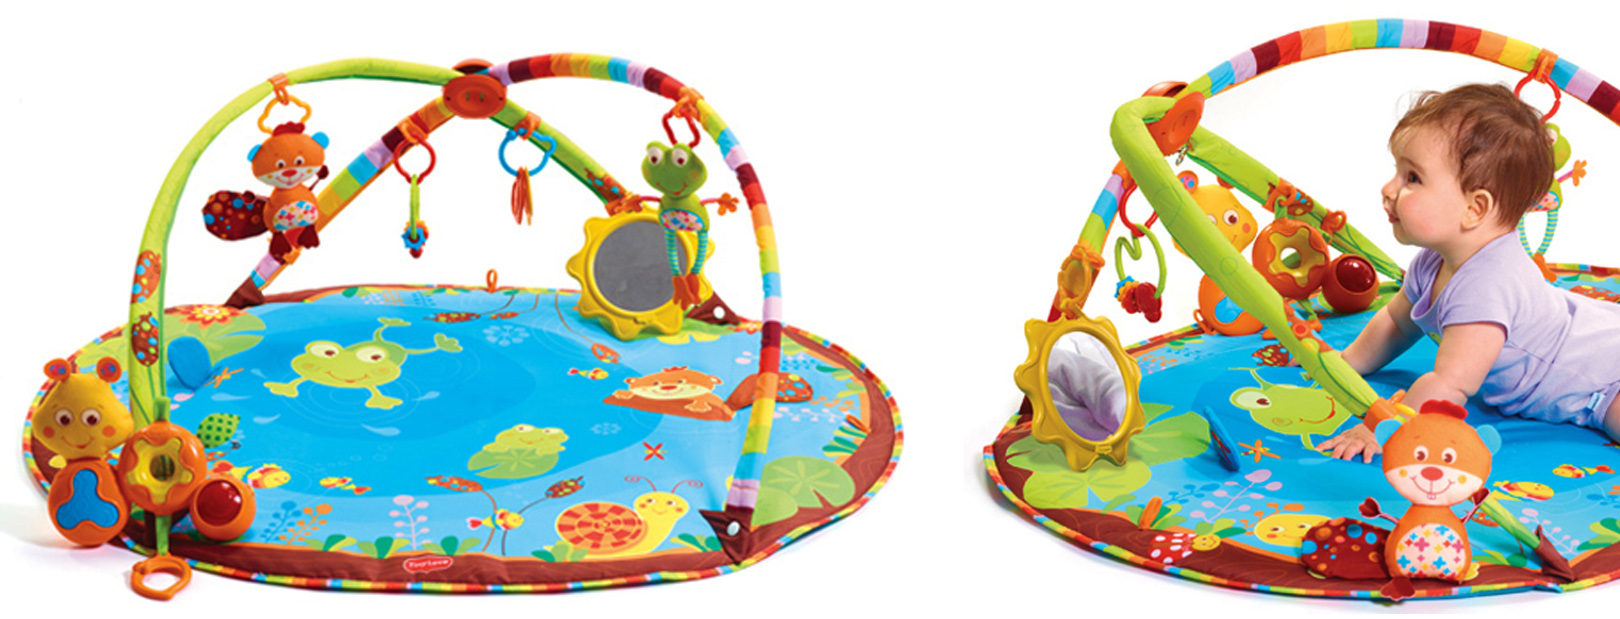 Gymini my nature pals activty playmat review